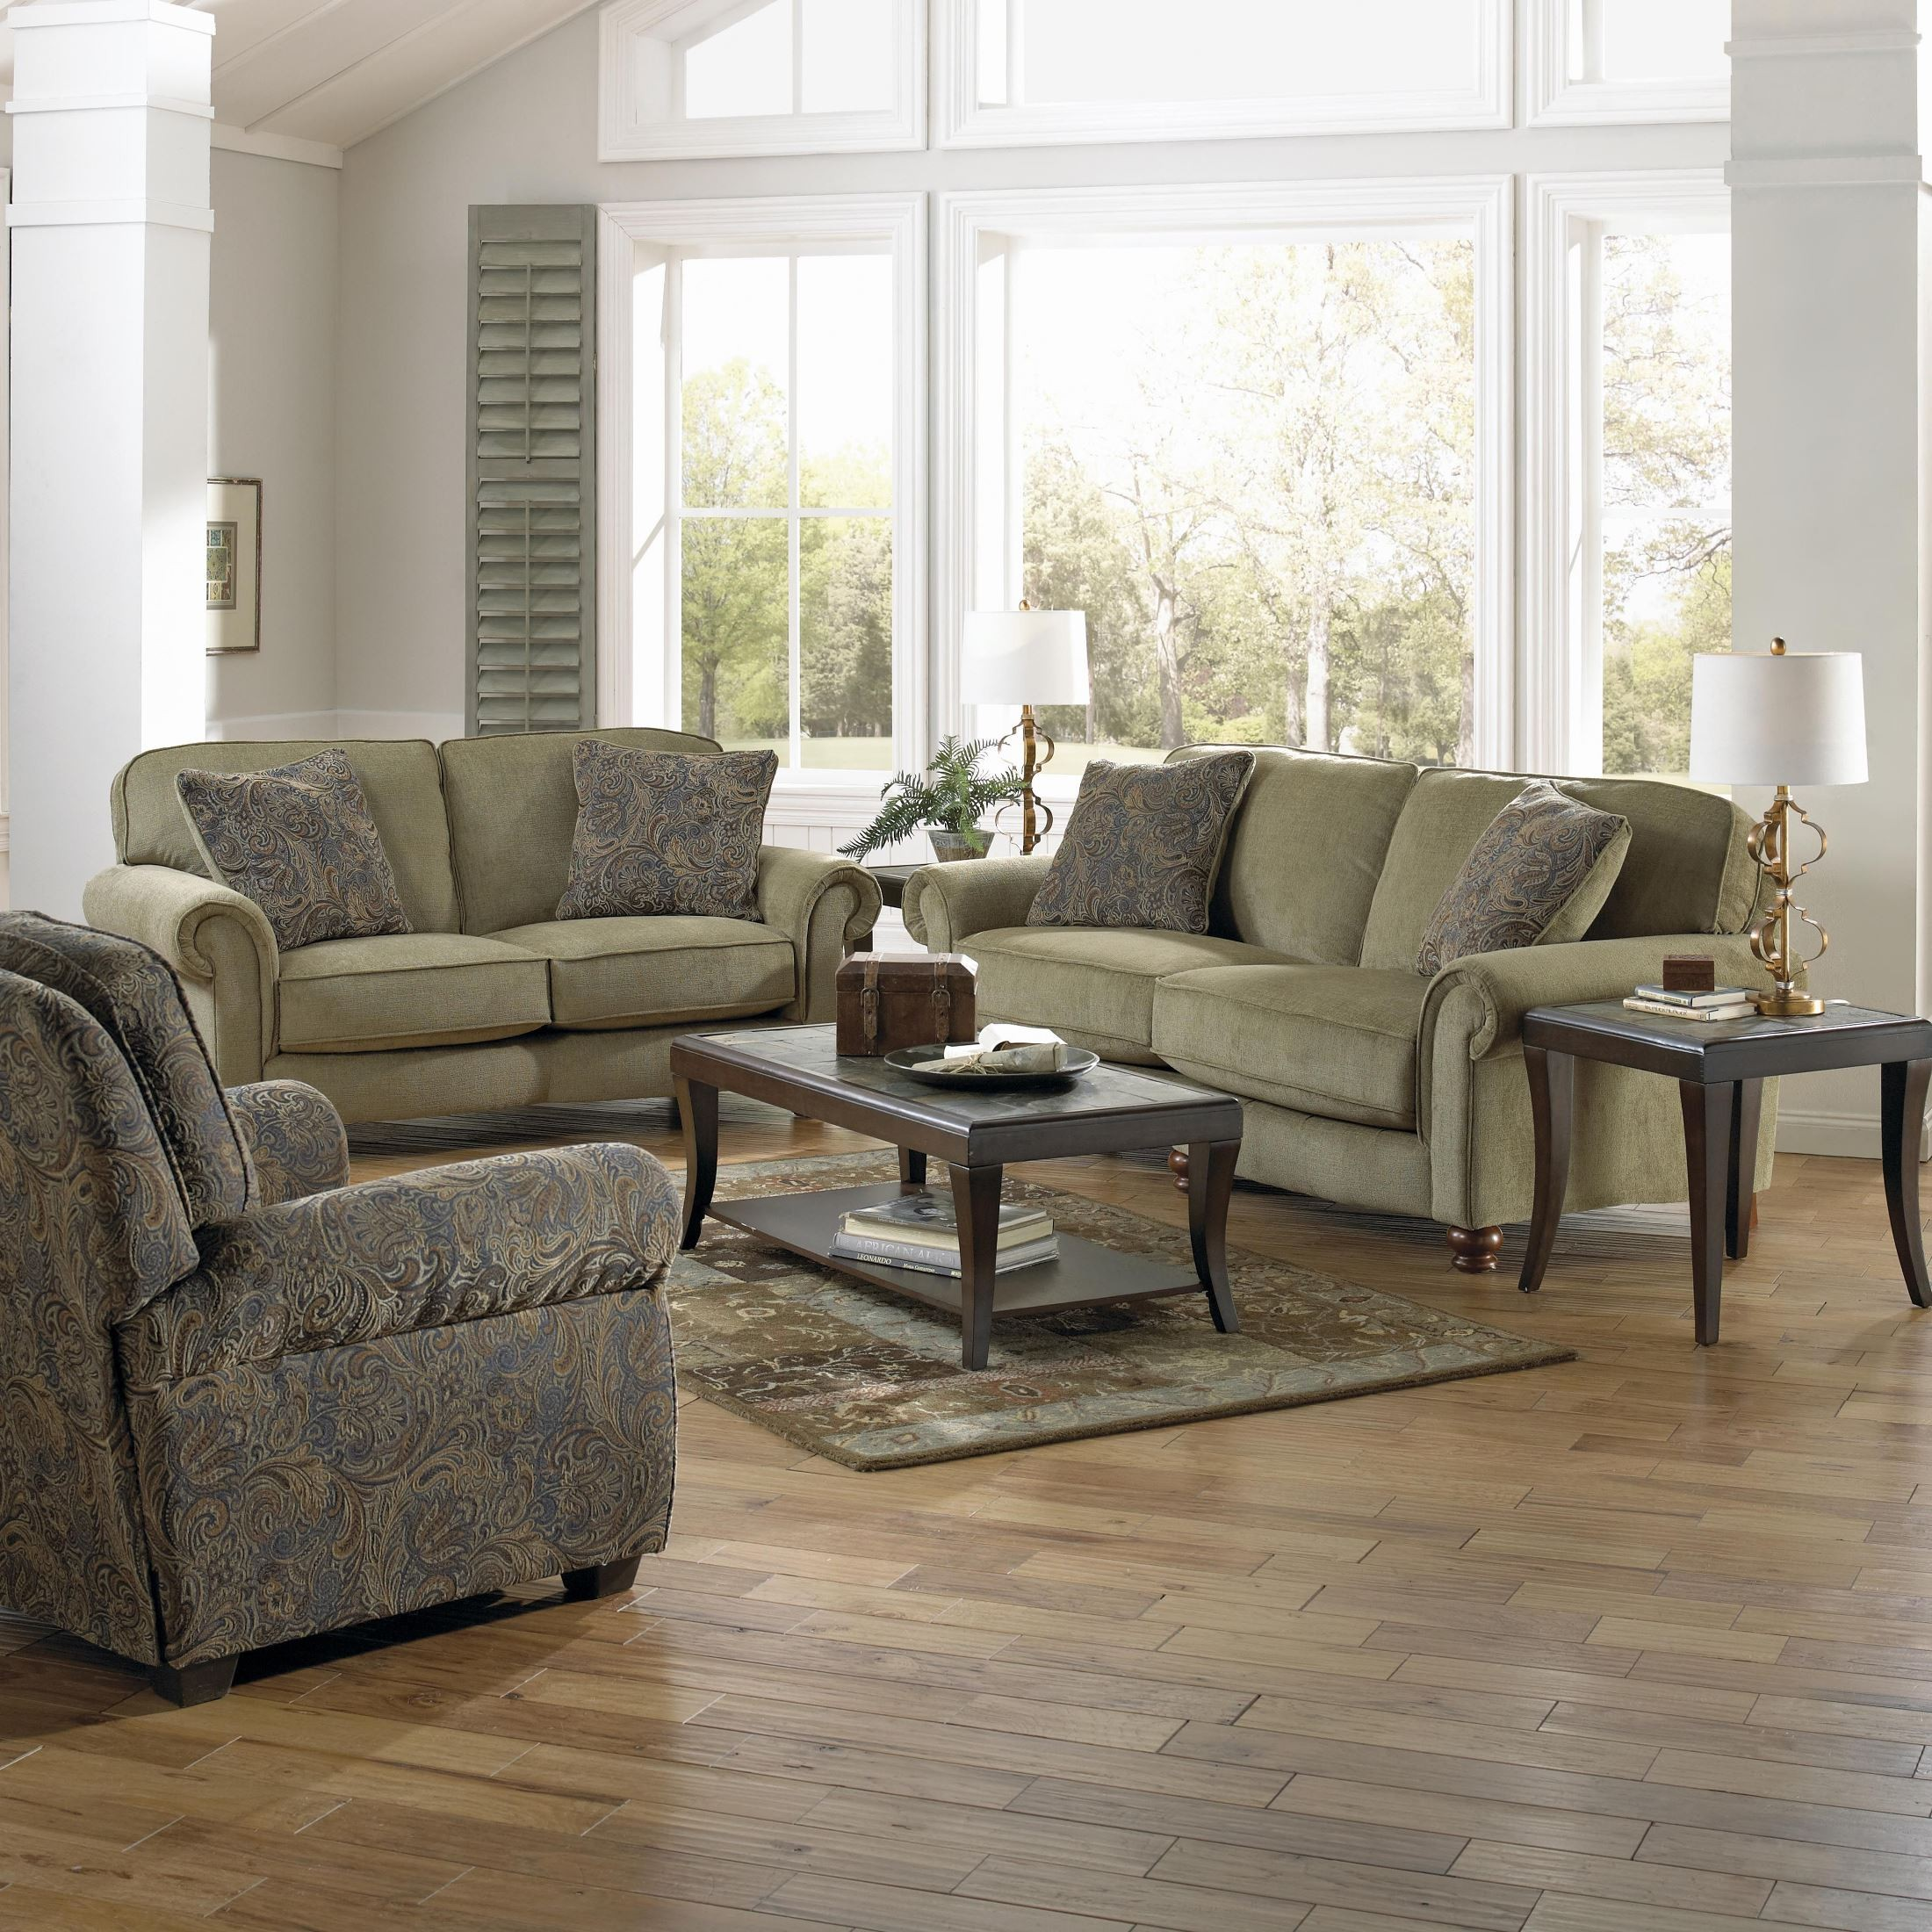 10 Best Jackson Ms Sectional Sofas: Downing Fern Sofa From Jackson (438403000000000000